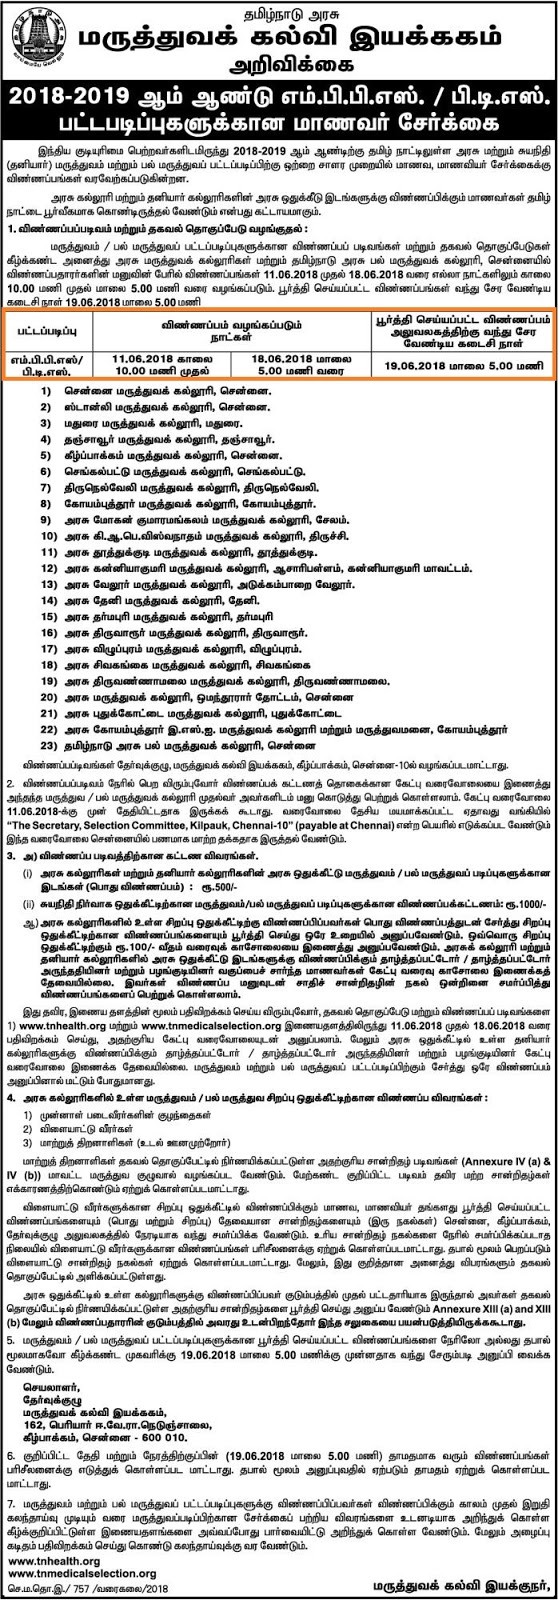 Tamilnadu Medical Admission Notification 2018-2019